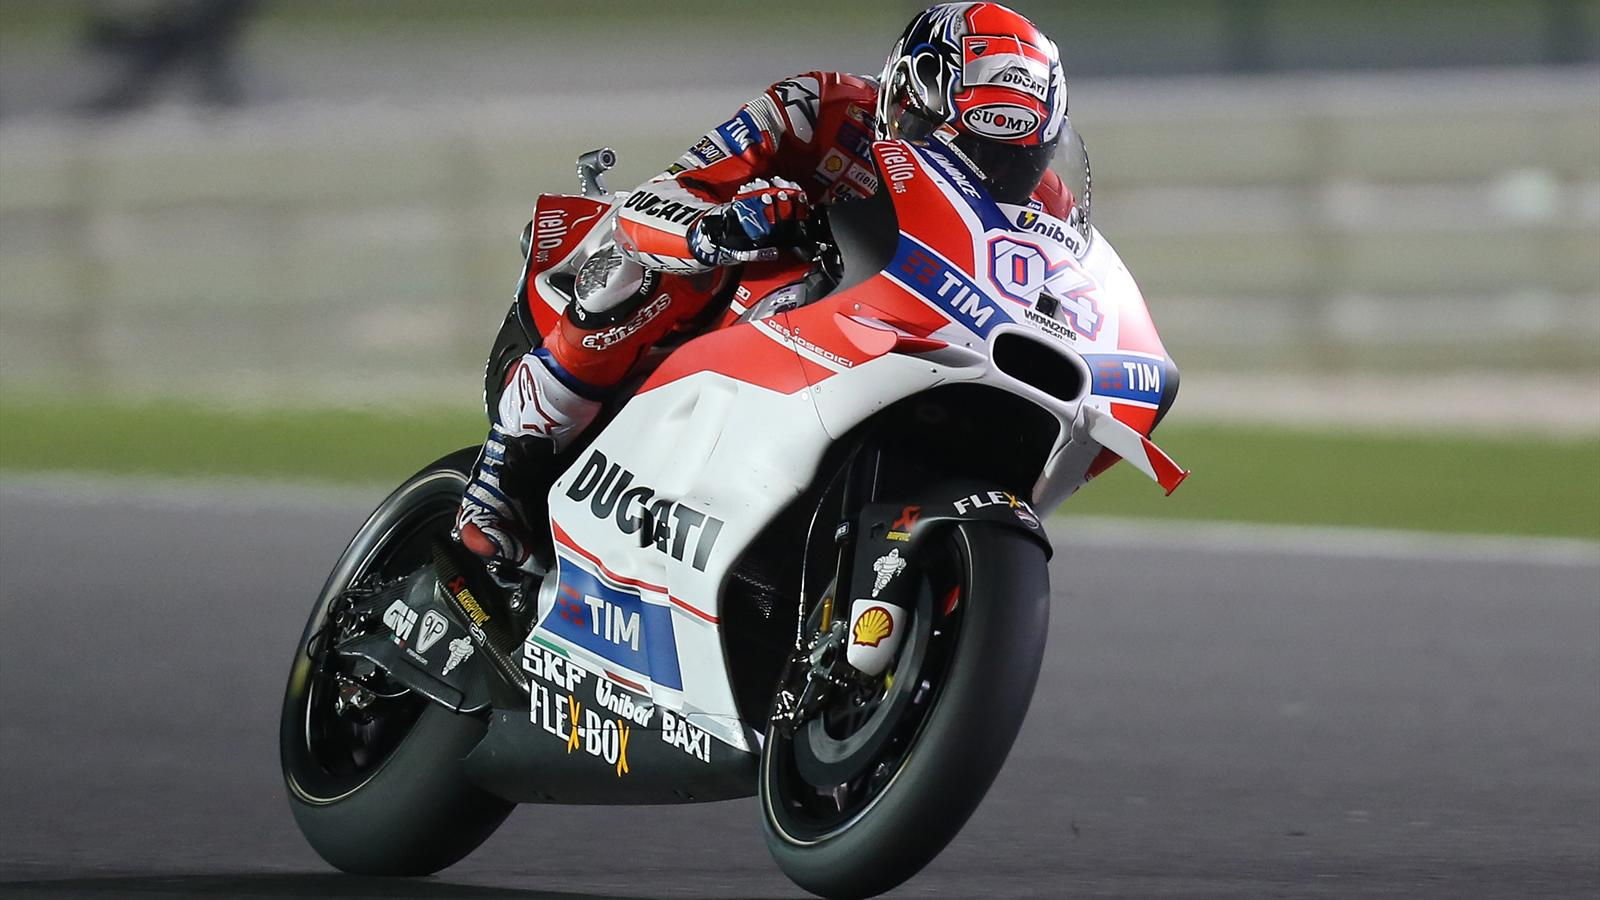 motogp andrea dovizioso ducati team le plus rapide d 39 une s ance pour du beurre grand prix. Black Bedroom Furniture Sets. Home Design Ideas